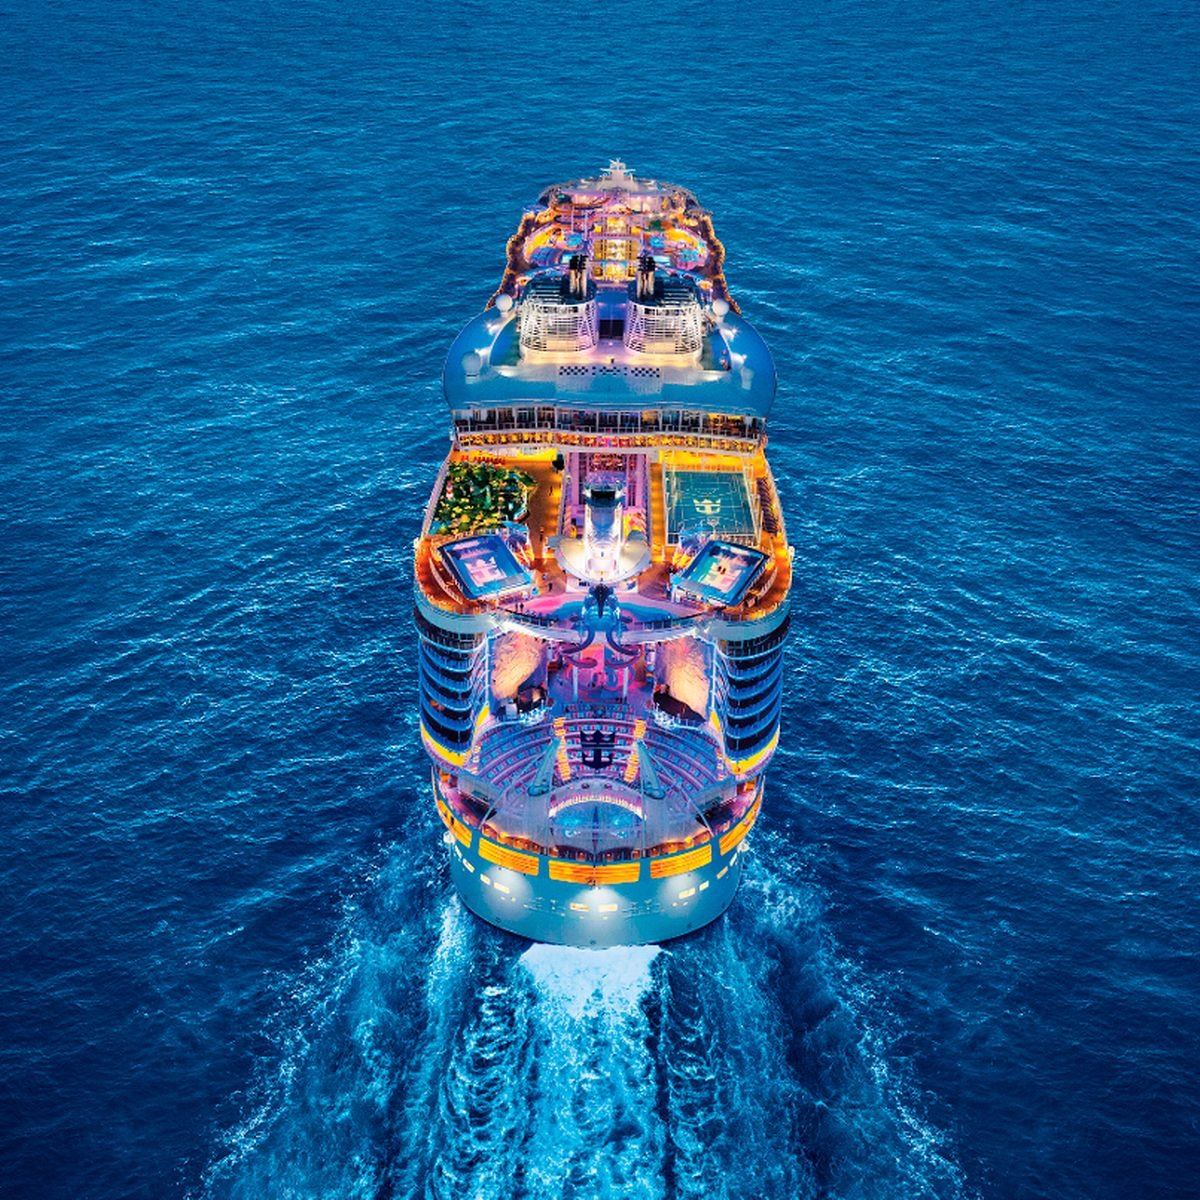 Royal Caribbean's Allure of the Seas: The World's Largest Cruise Ship Will Sail Again in August.